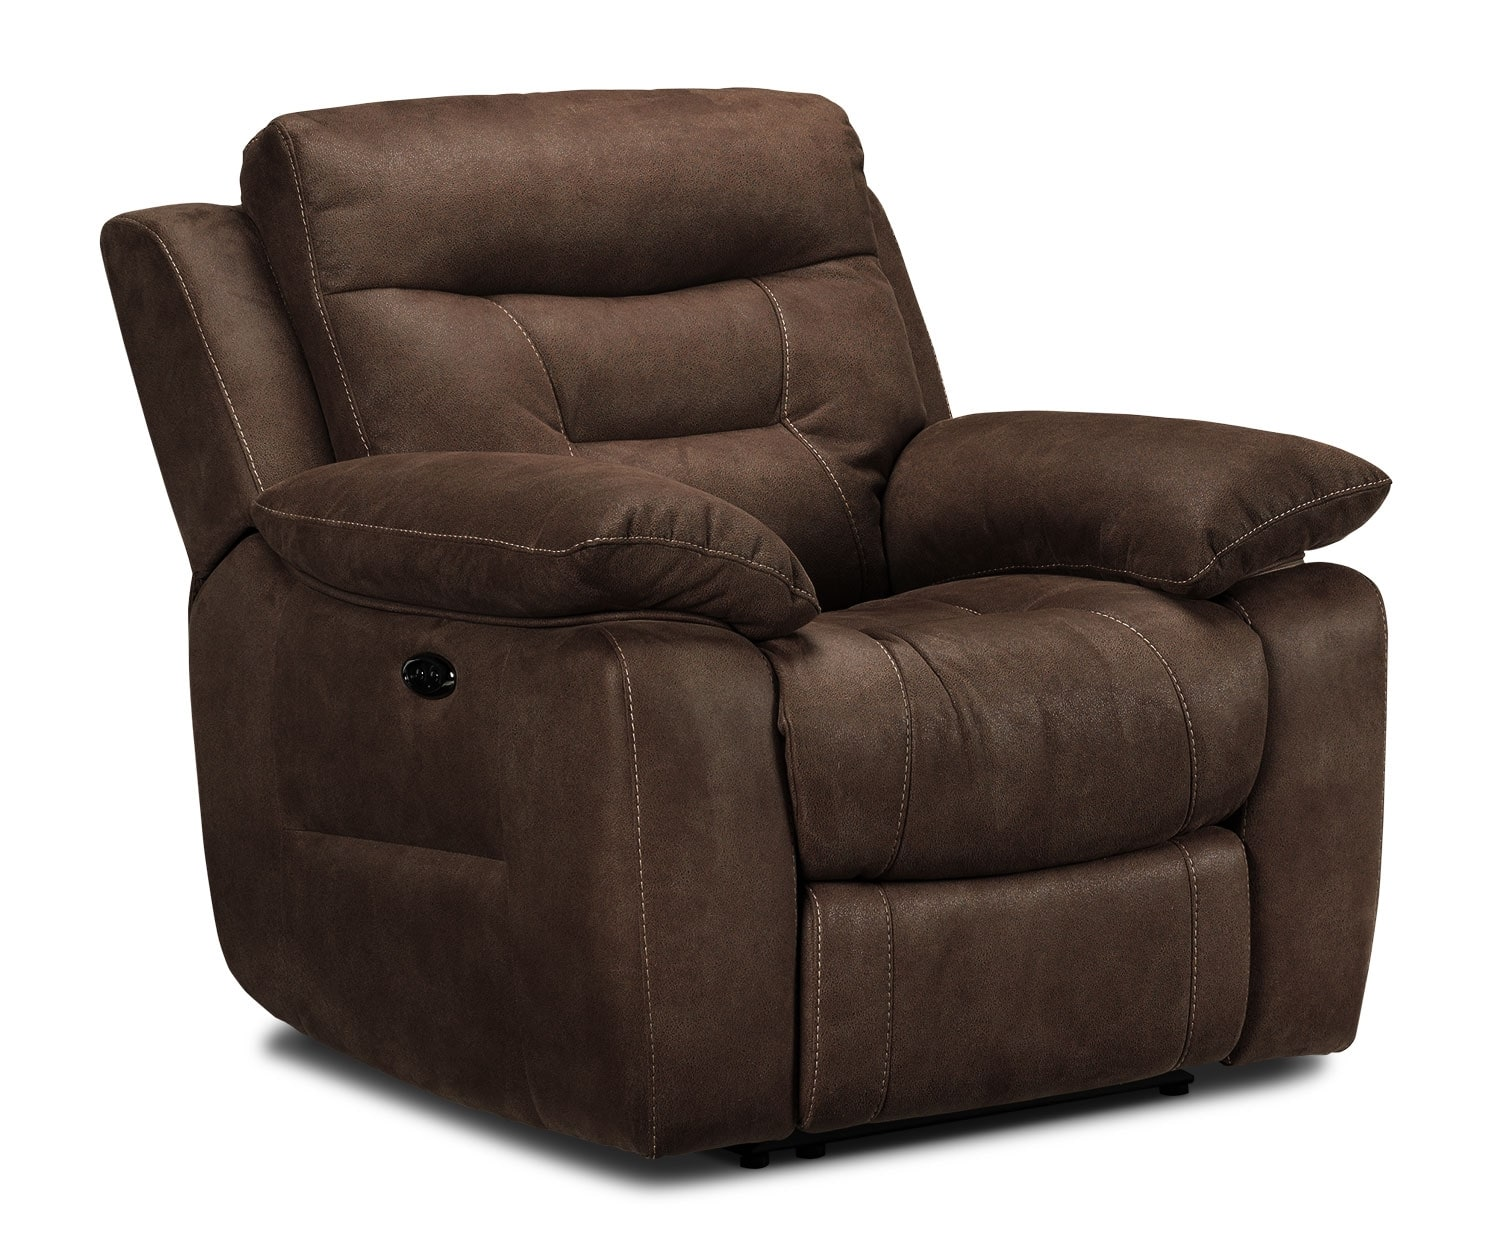 Living Room Furniture - Collins Power Recliner - Walnut